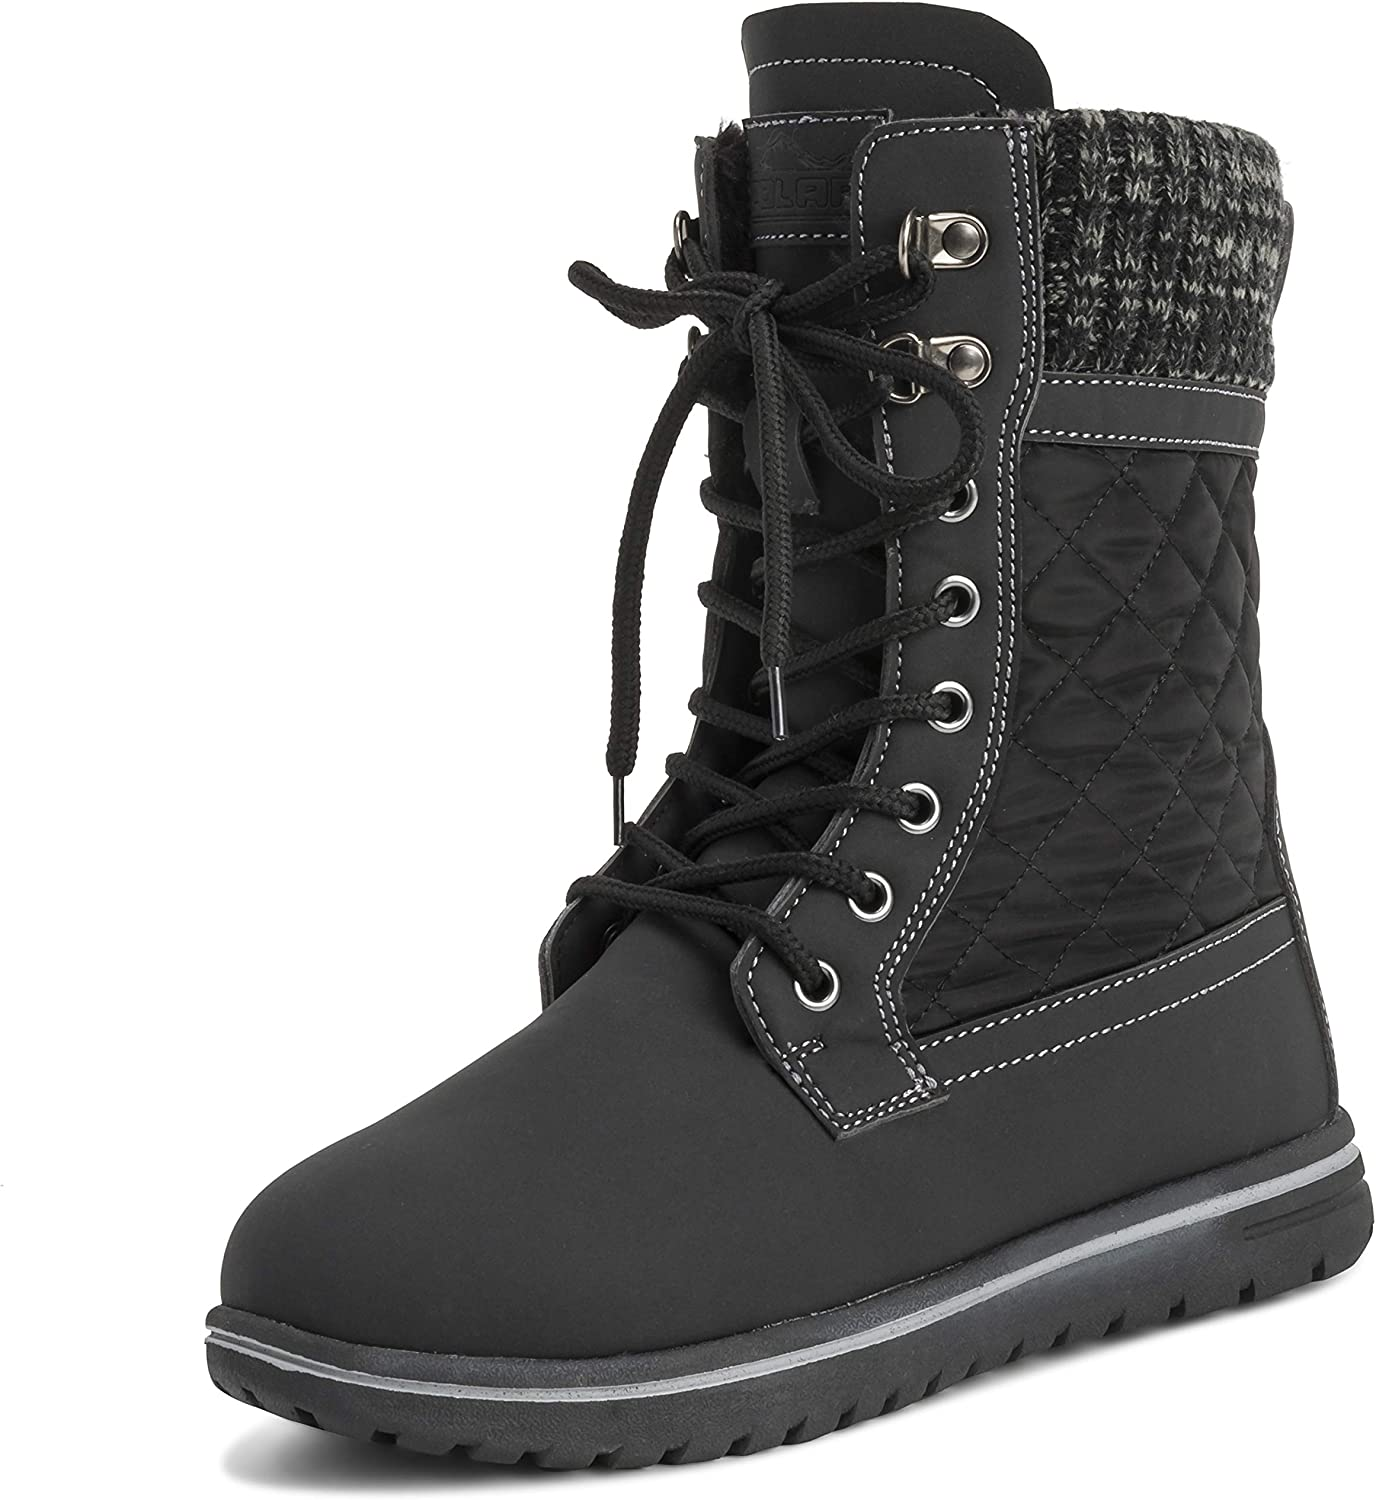 Polar Womens Quilted Short Faux Fur Snow Waterproof Winter Durable Warm Boots - 11 - BLK42 AYC0525